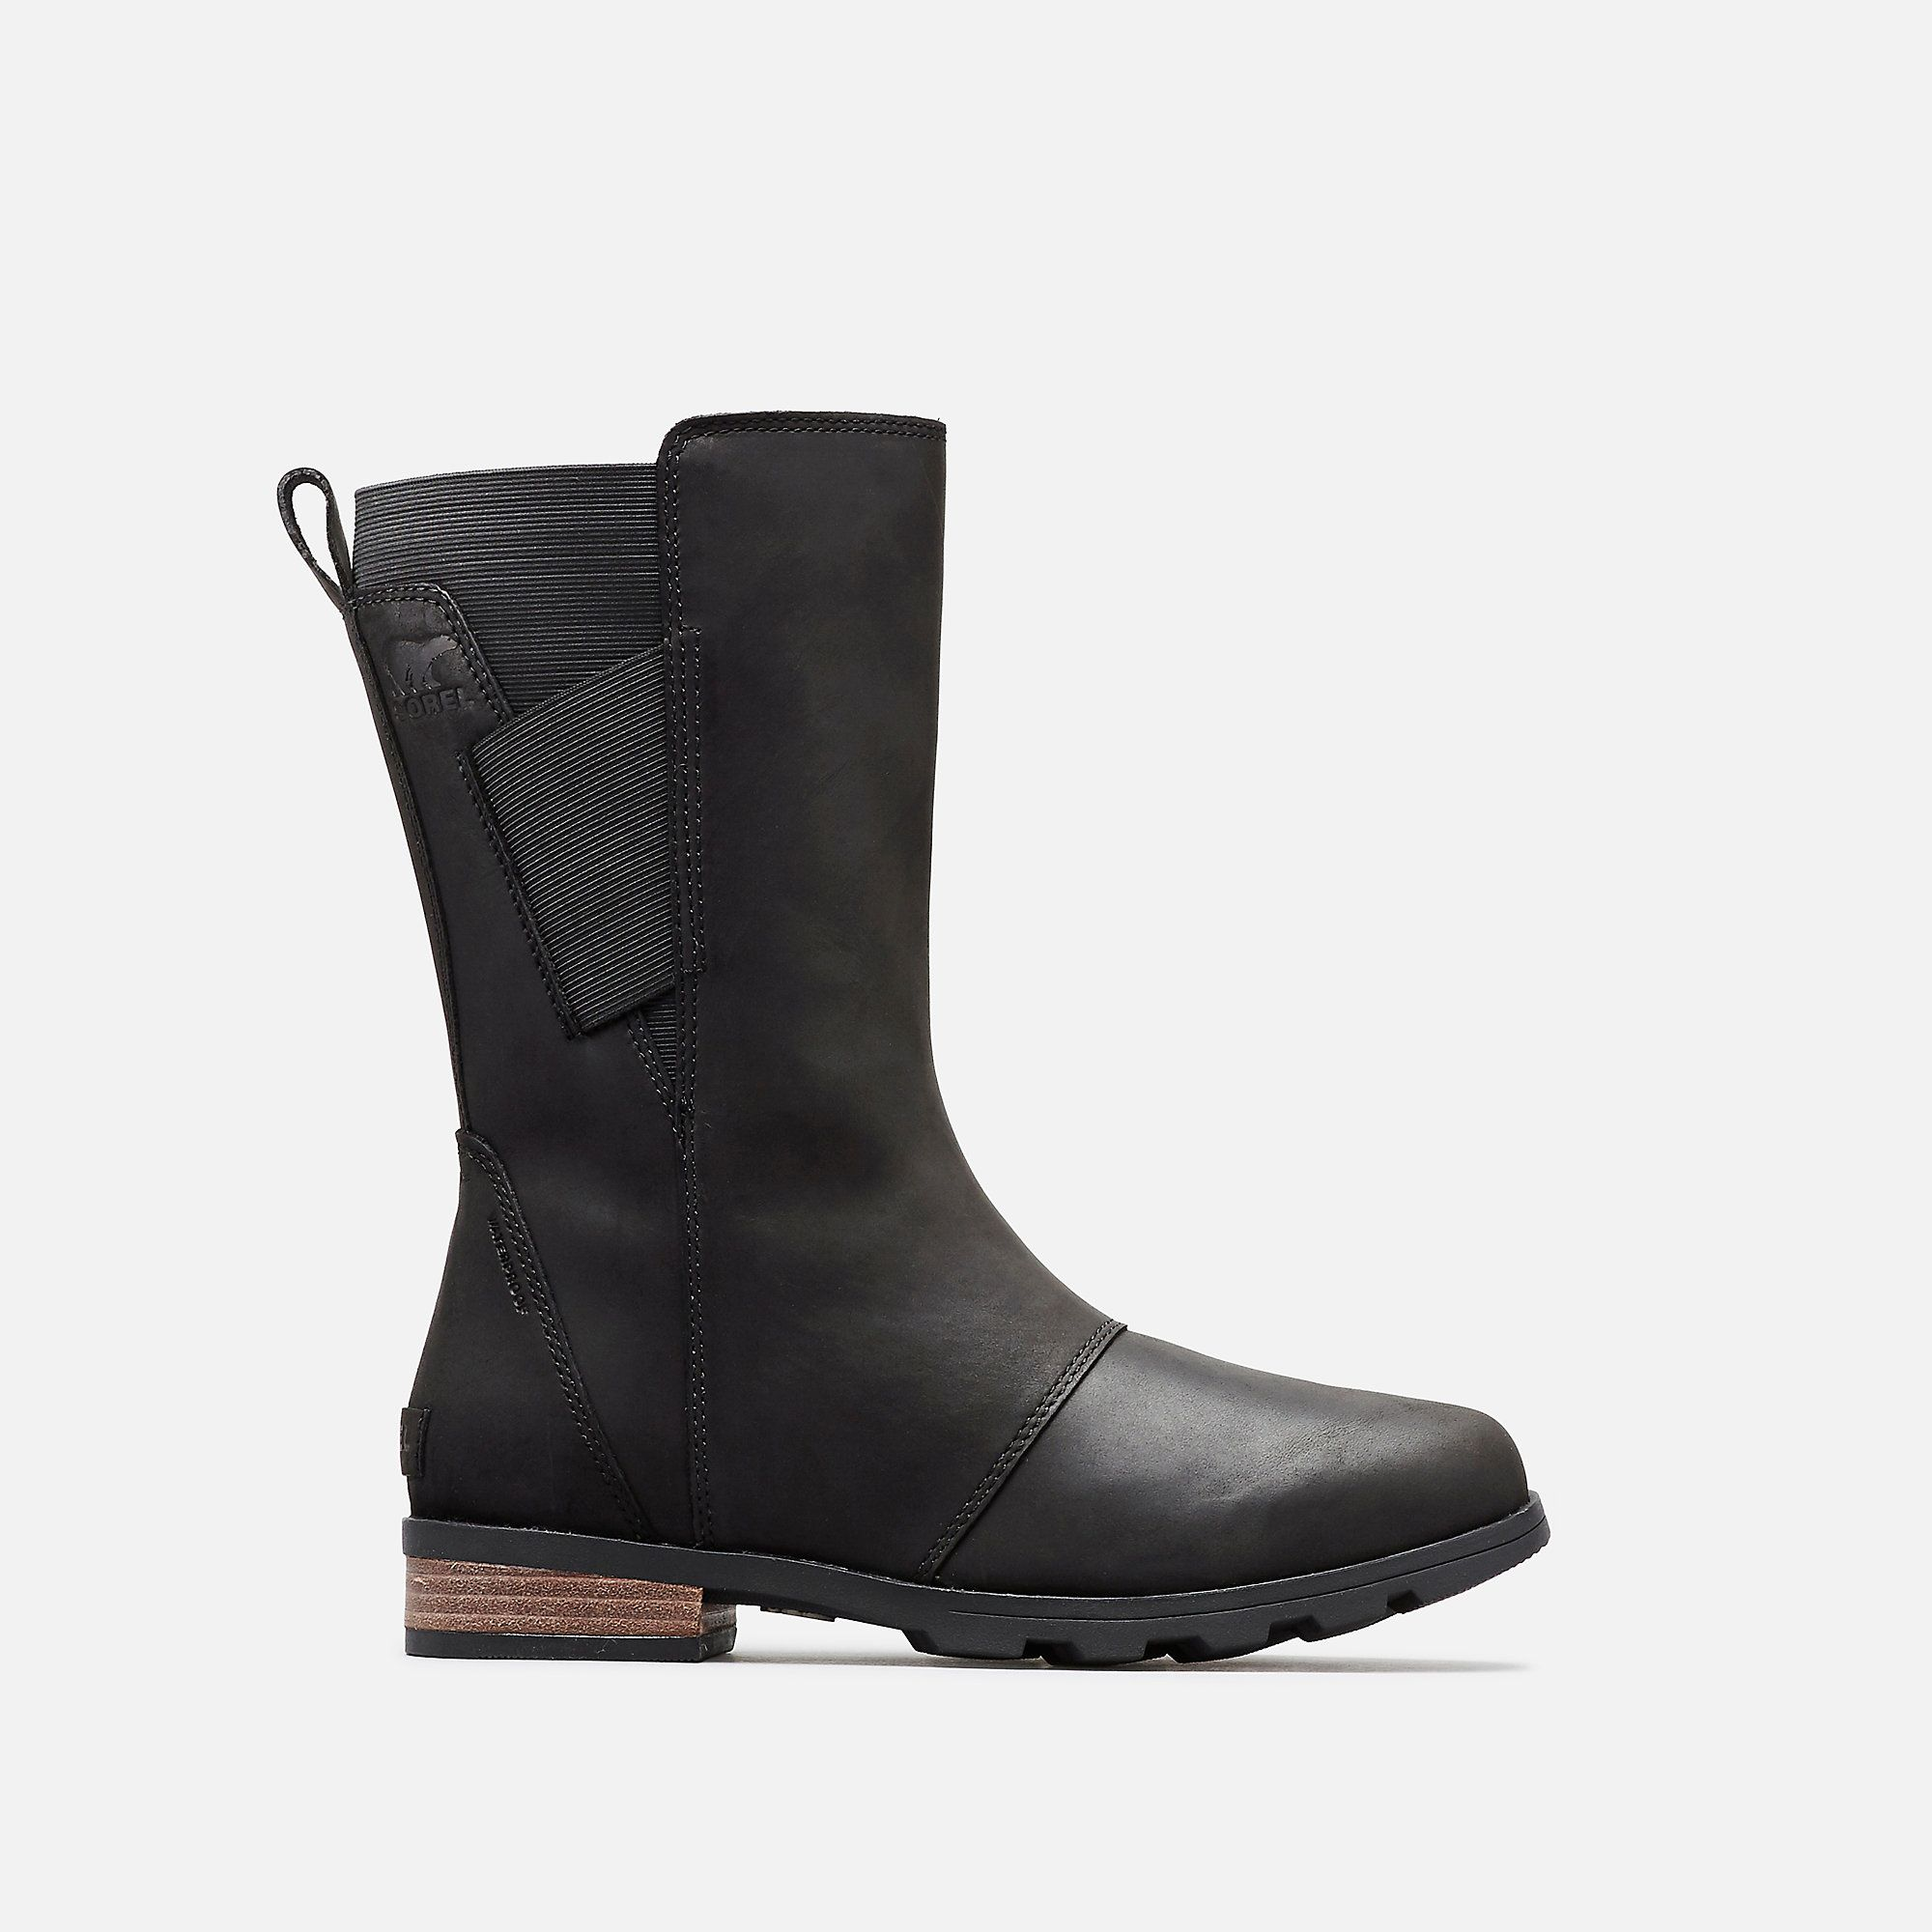 quality exclusive range more photos Women's Emelie™ Mid Boot | Boots, Pull on boots, Over the knee boots